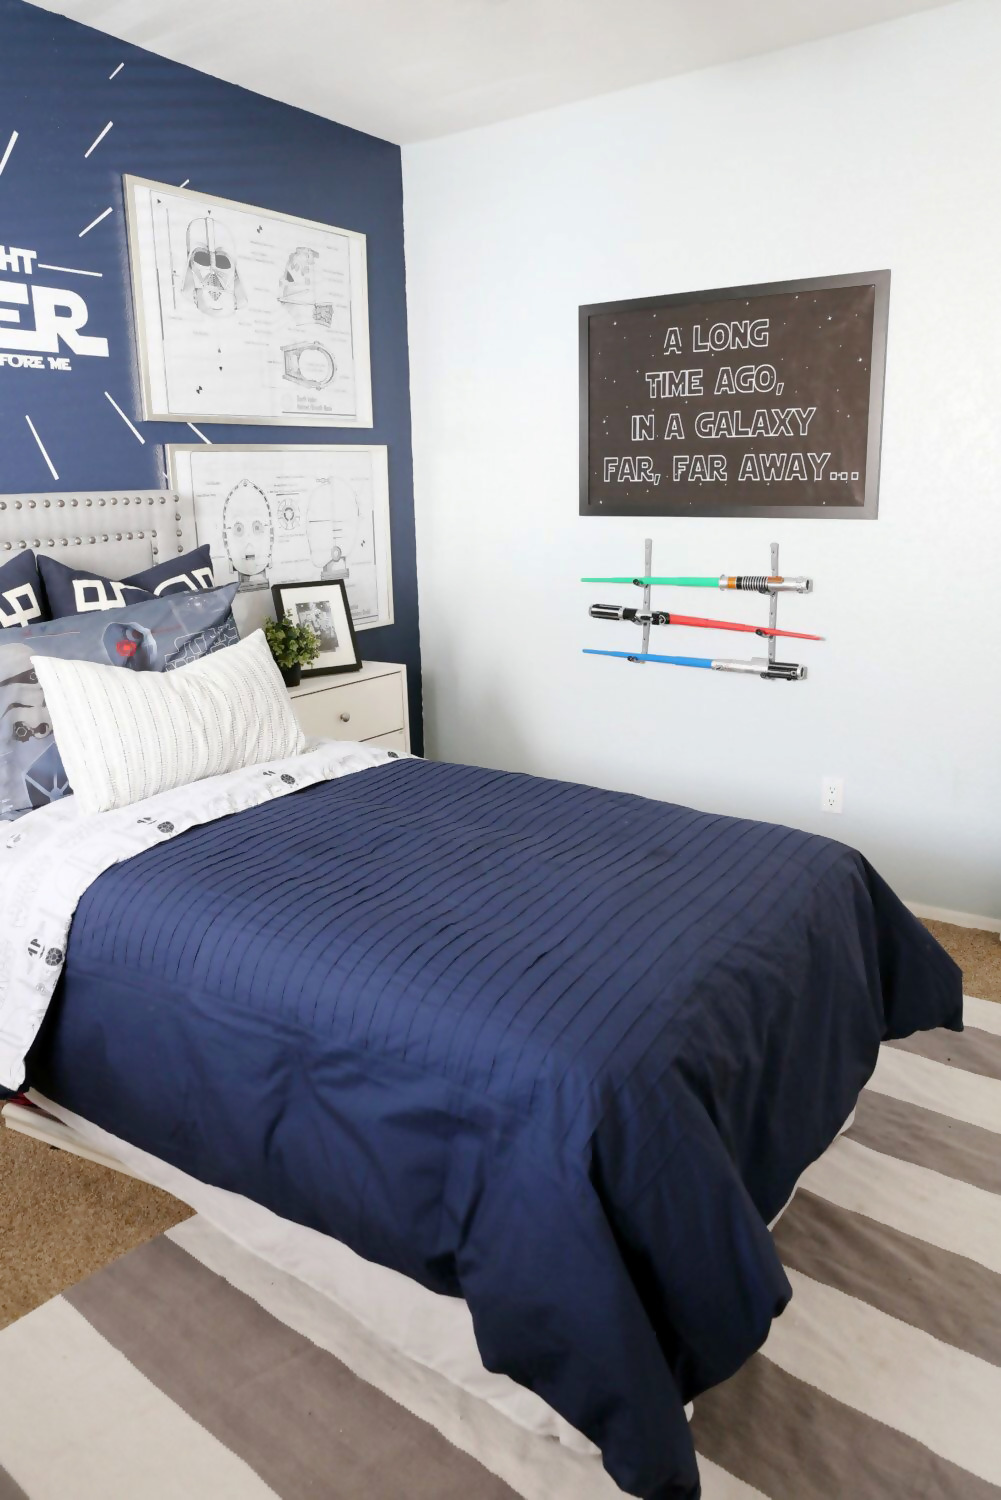 Cool Star Wars Bedroom Decor Ideas With Images Star Wars Bedroom Star Wars Bedroom Decor Star Wars Room Decor